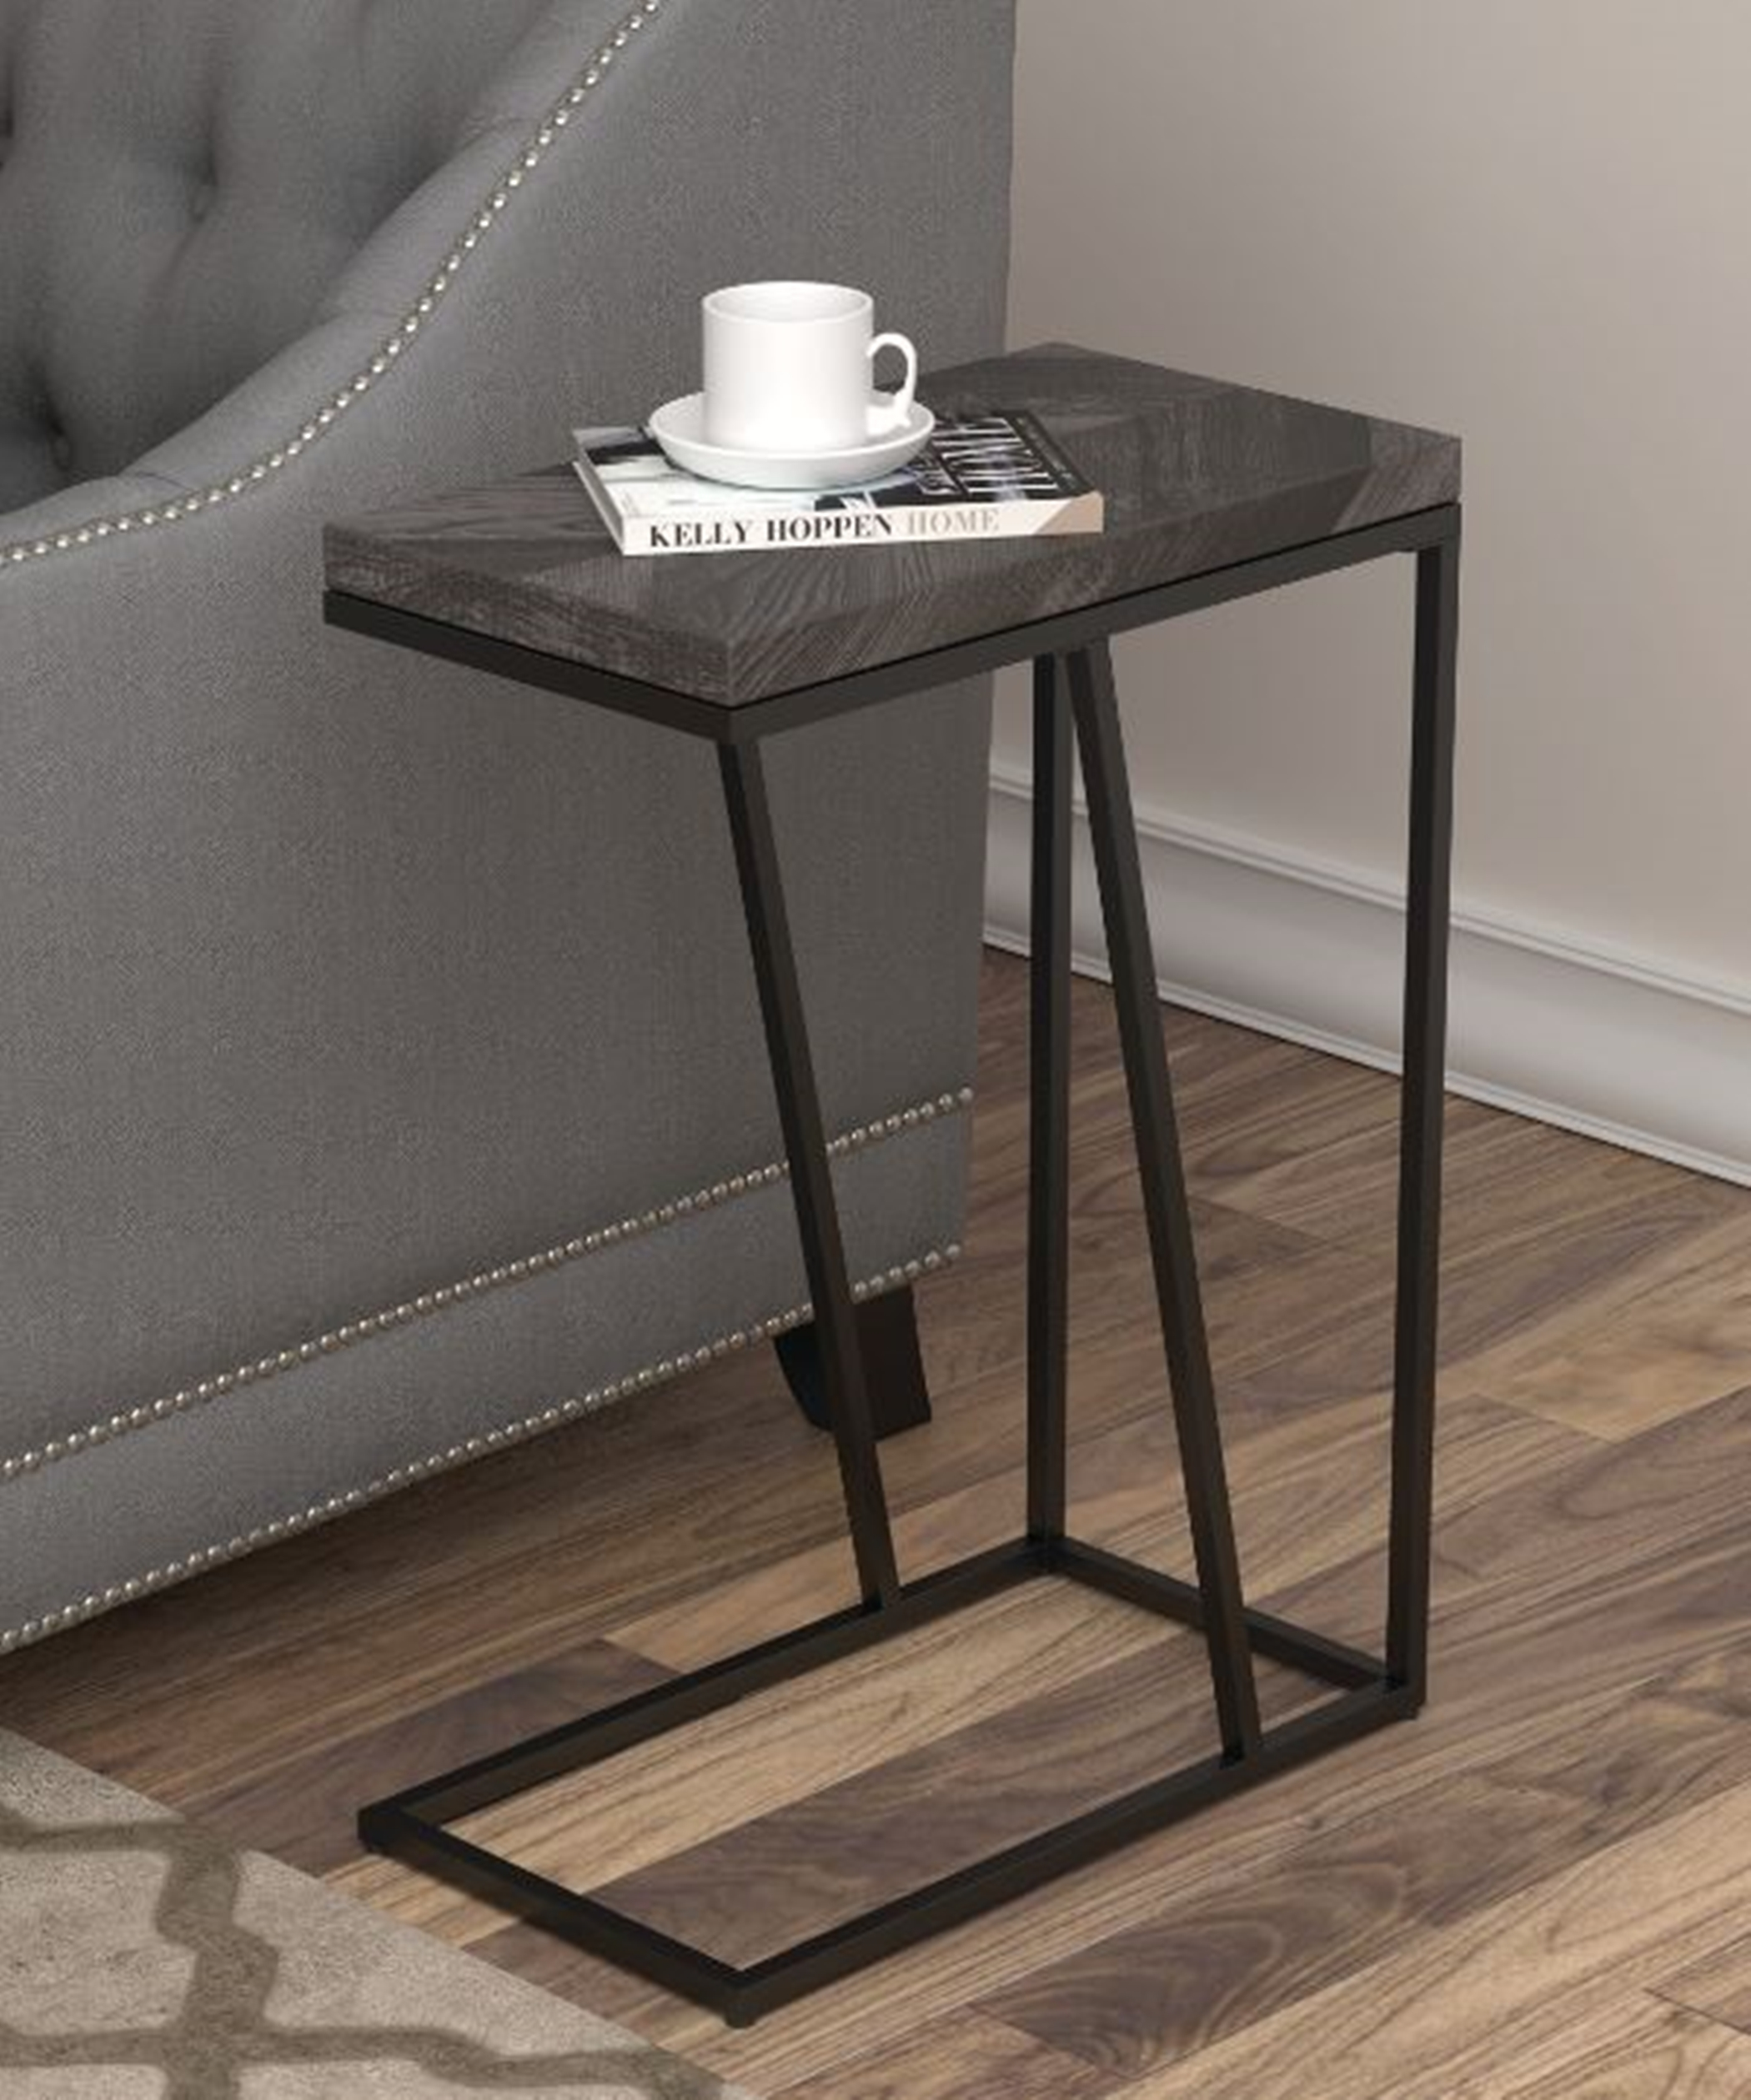 931156 - Accent Table